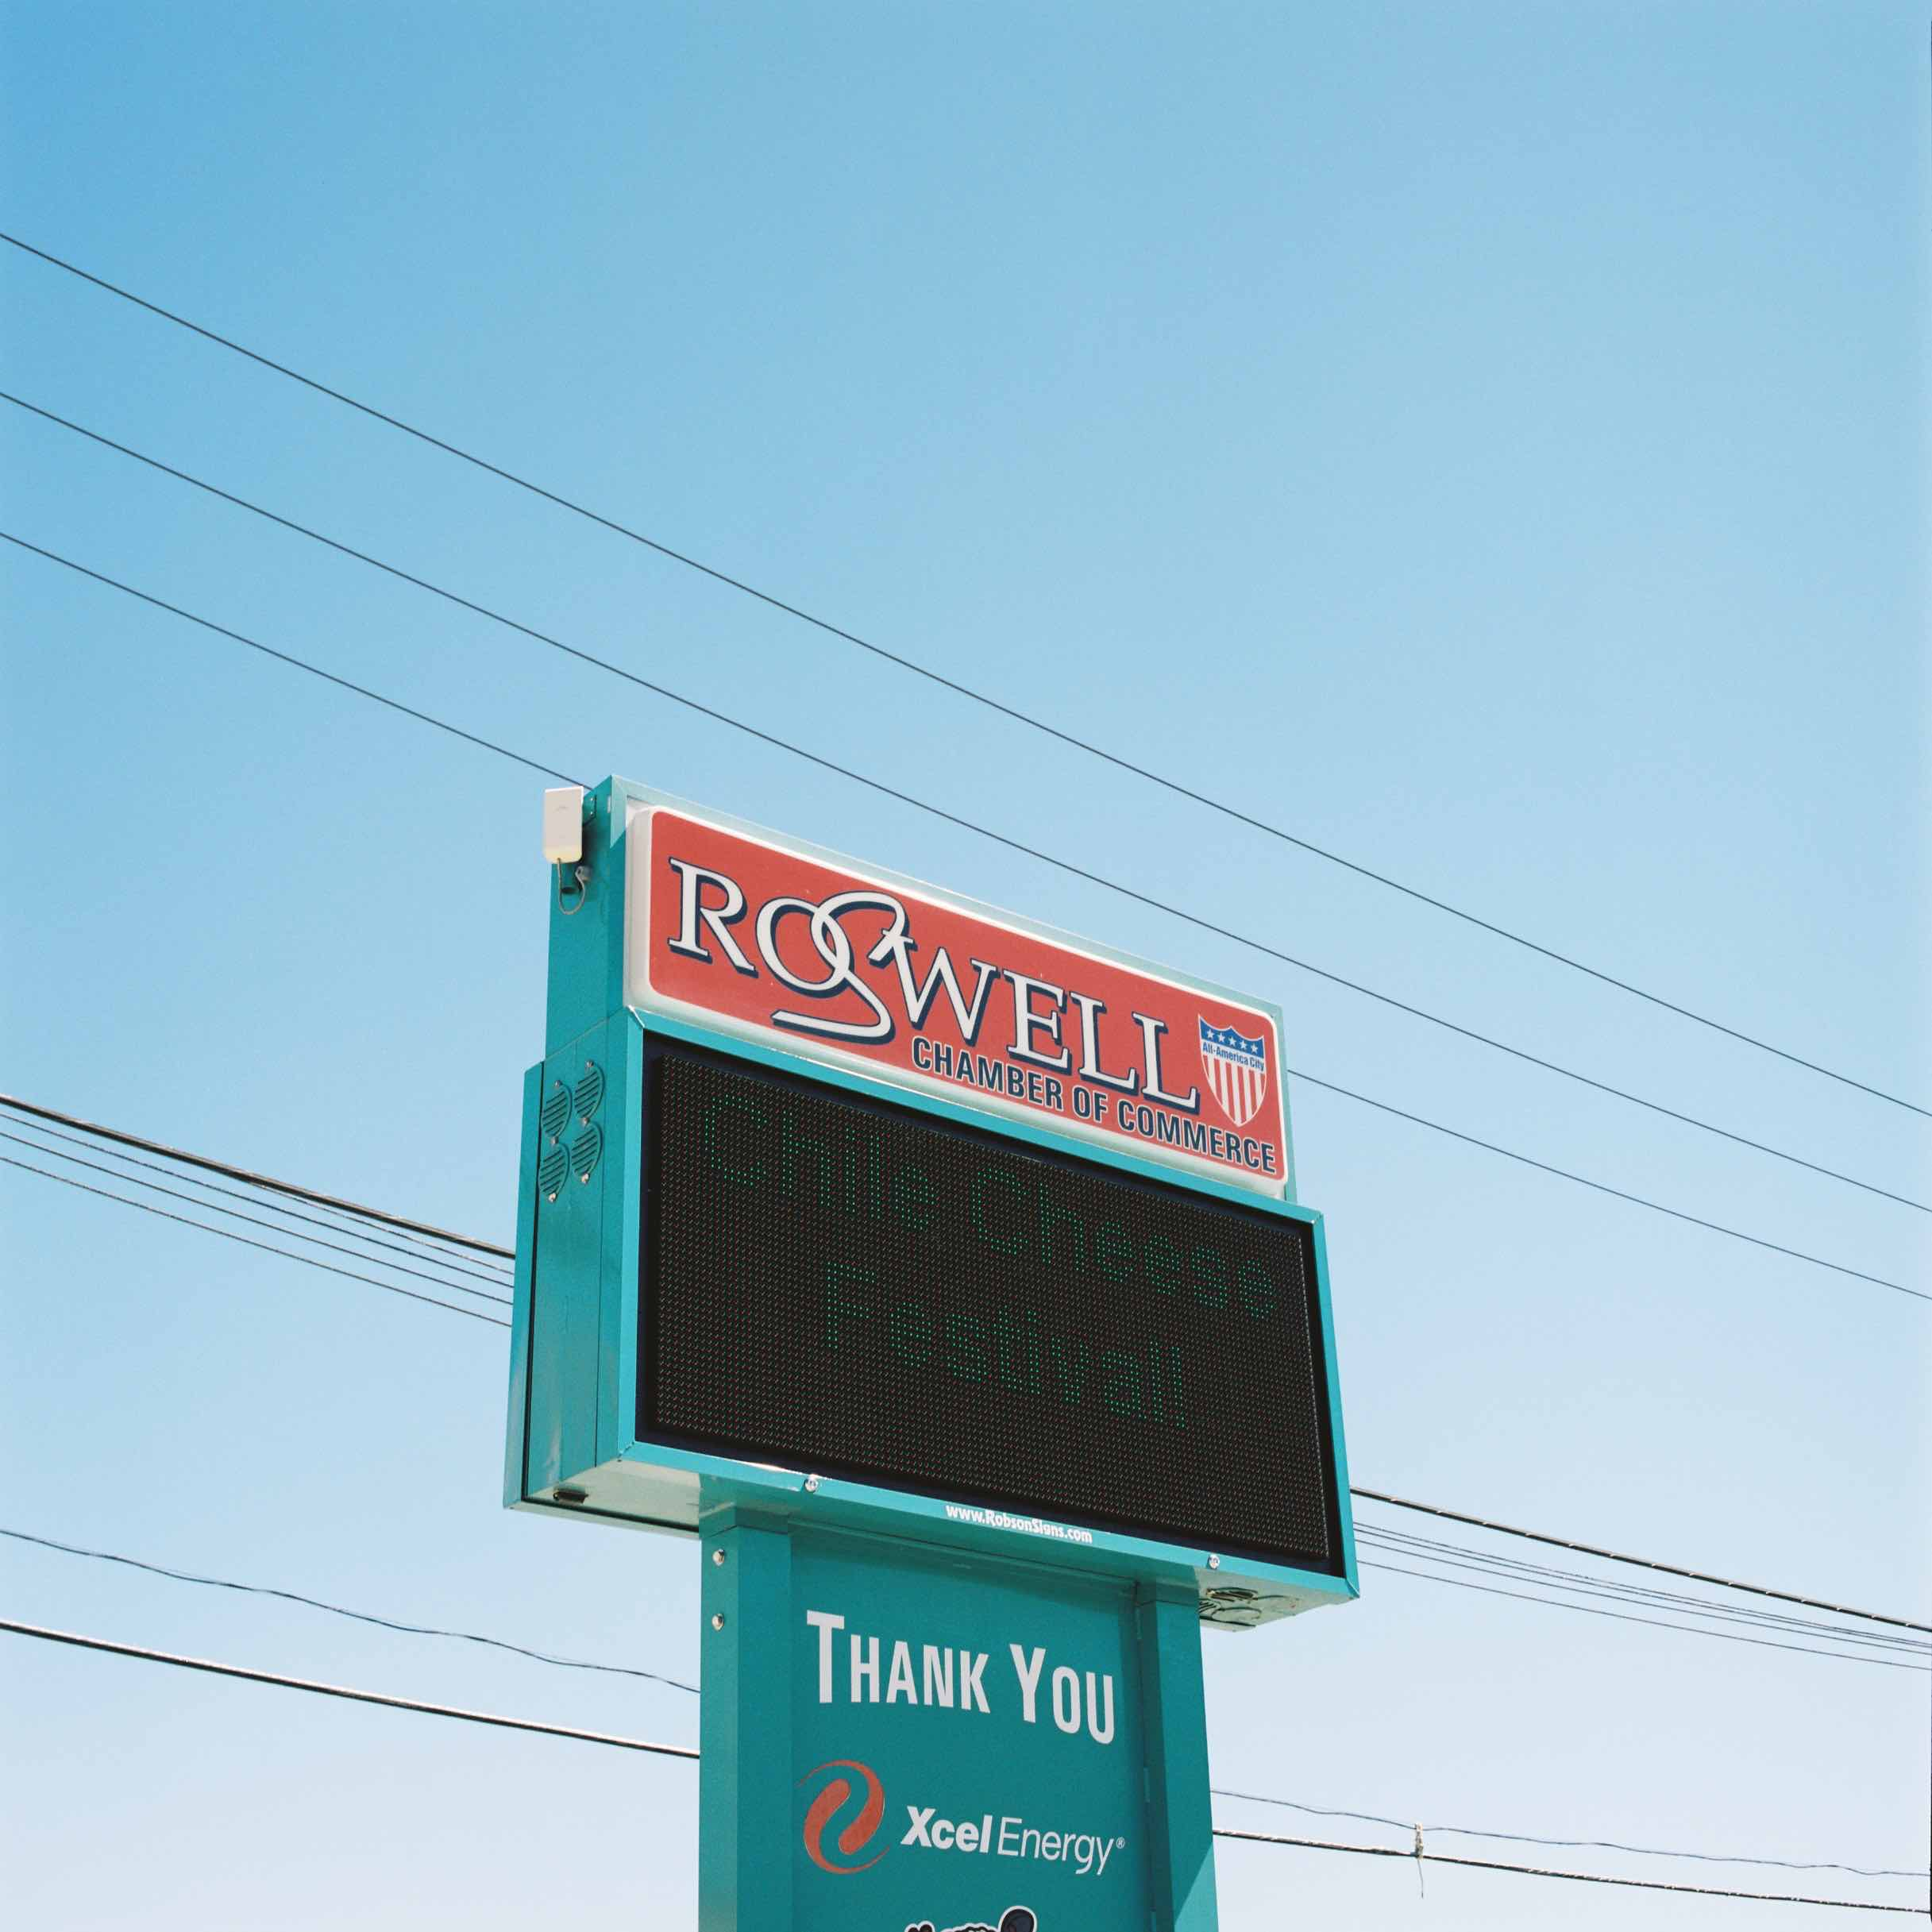 photo - Roswell Chamber of Commerce sign